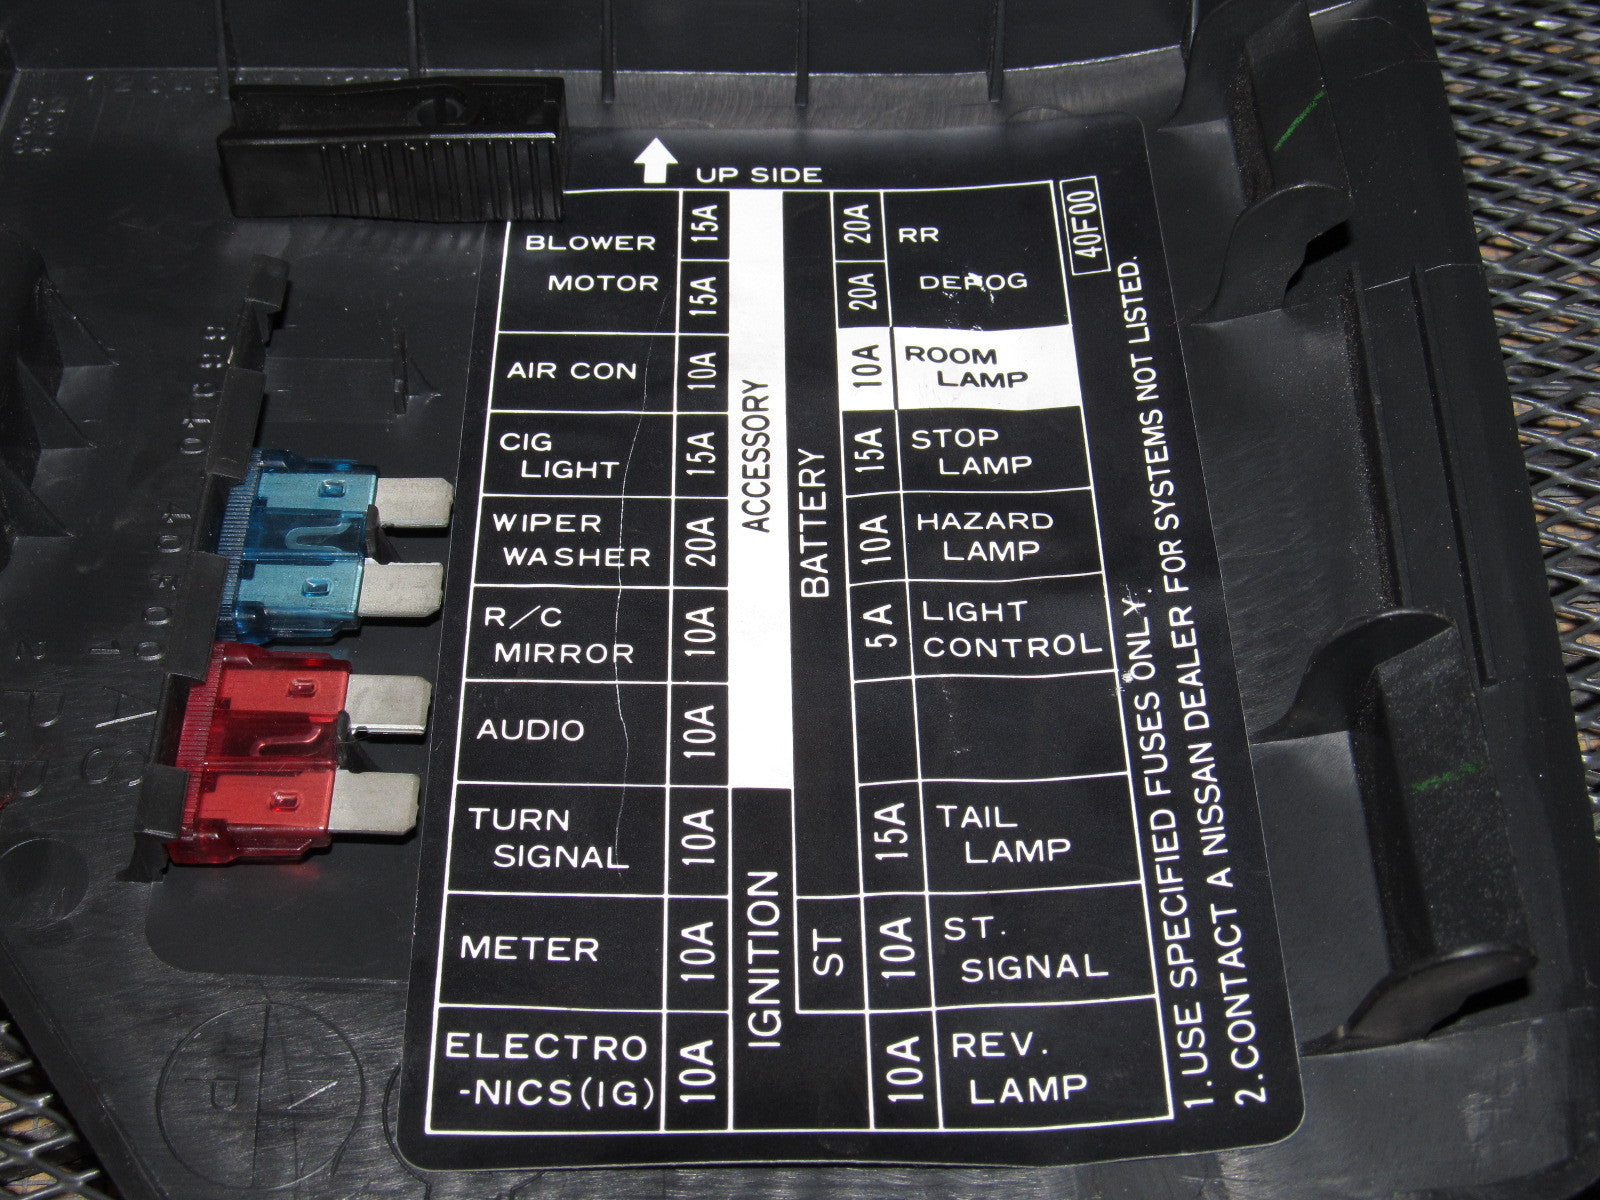 S14 Fuse Box On Side Of Plugs Starting Know About Wiring Diagram Ae86 Headlight 1995 240sx Manual